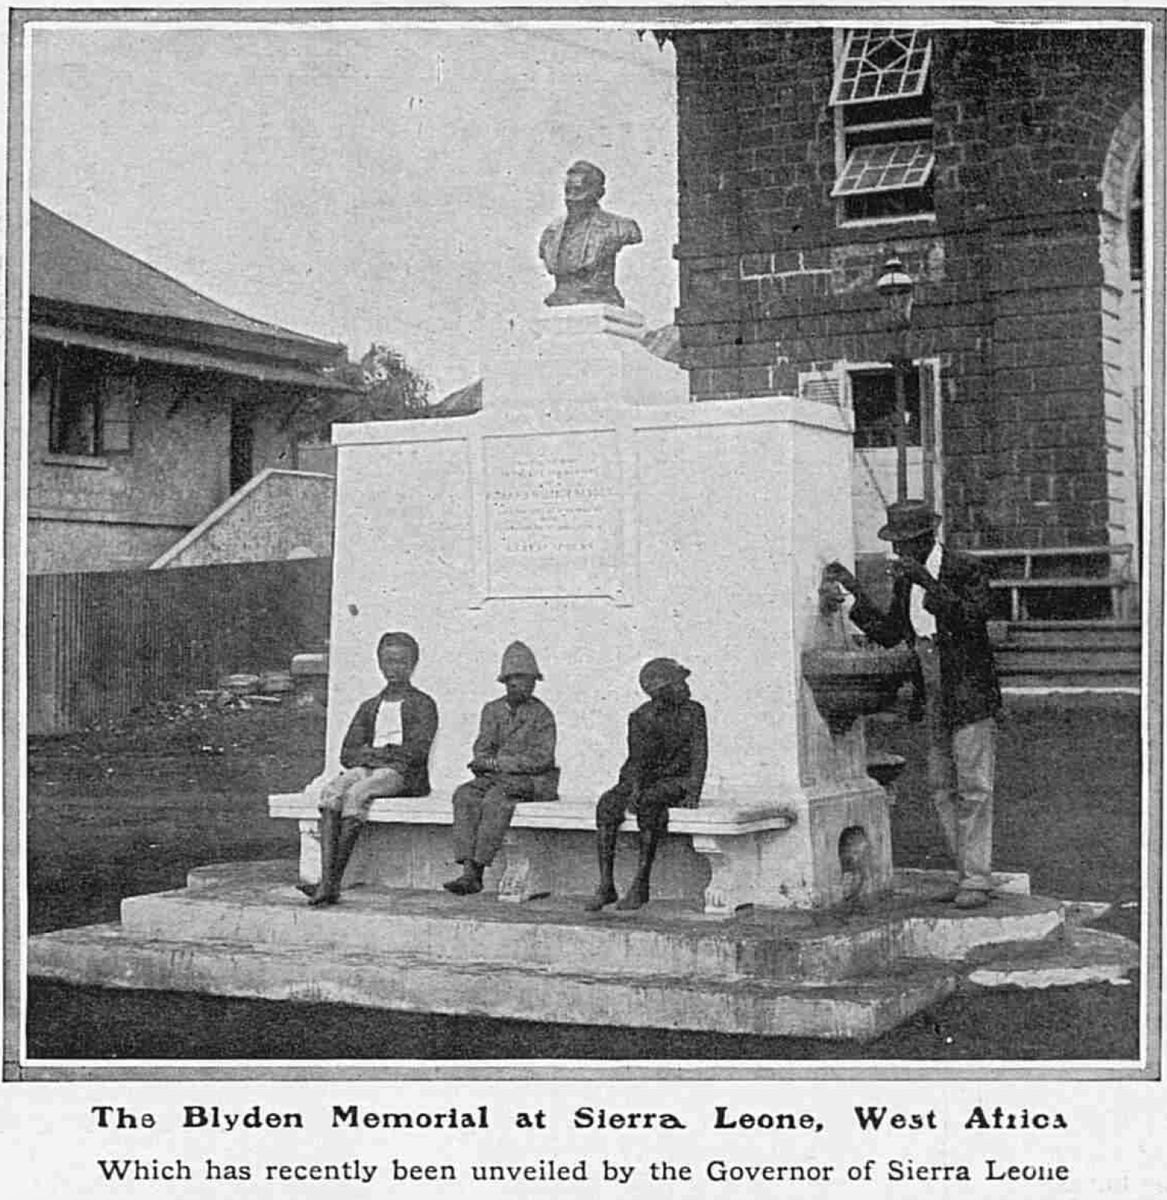 "#SierraLeone 1913. I think this must be one of the earliest photos of the #BlydenMemorial in #Freetown #SierraLeone ""The Blyden Memorial at Sierra. Leone, which has recently been unveiled by the Governor of Sierra Leone ...1910."" https://t.co/cxkOkDoWI4"